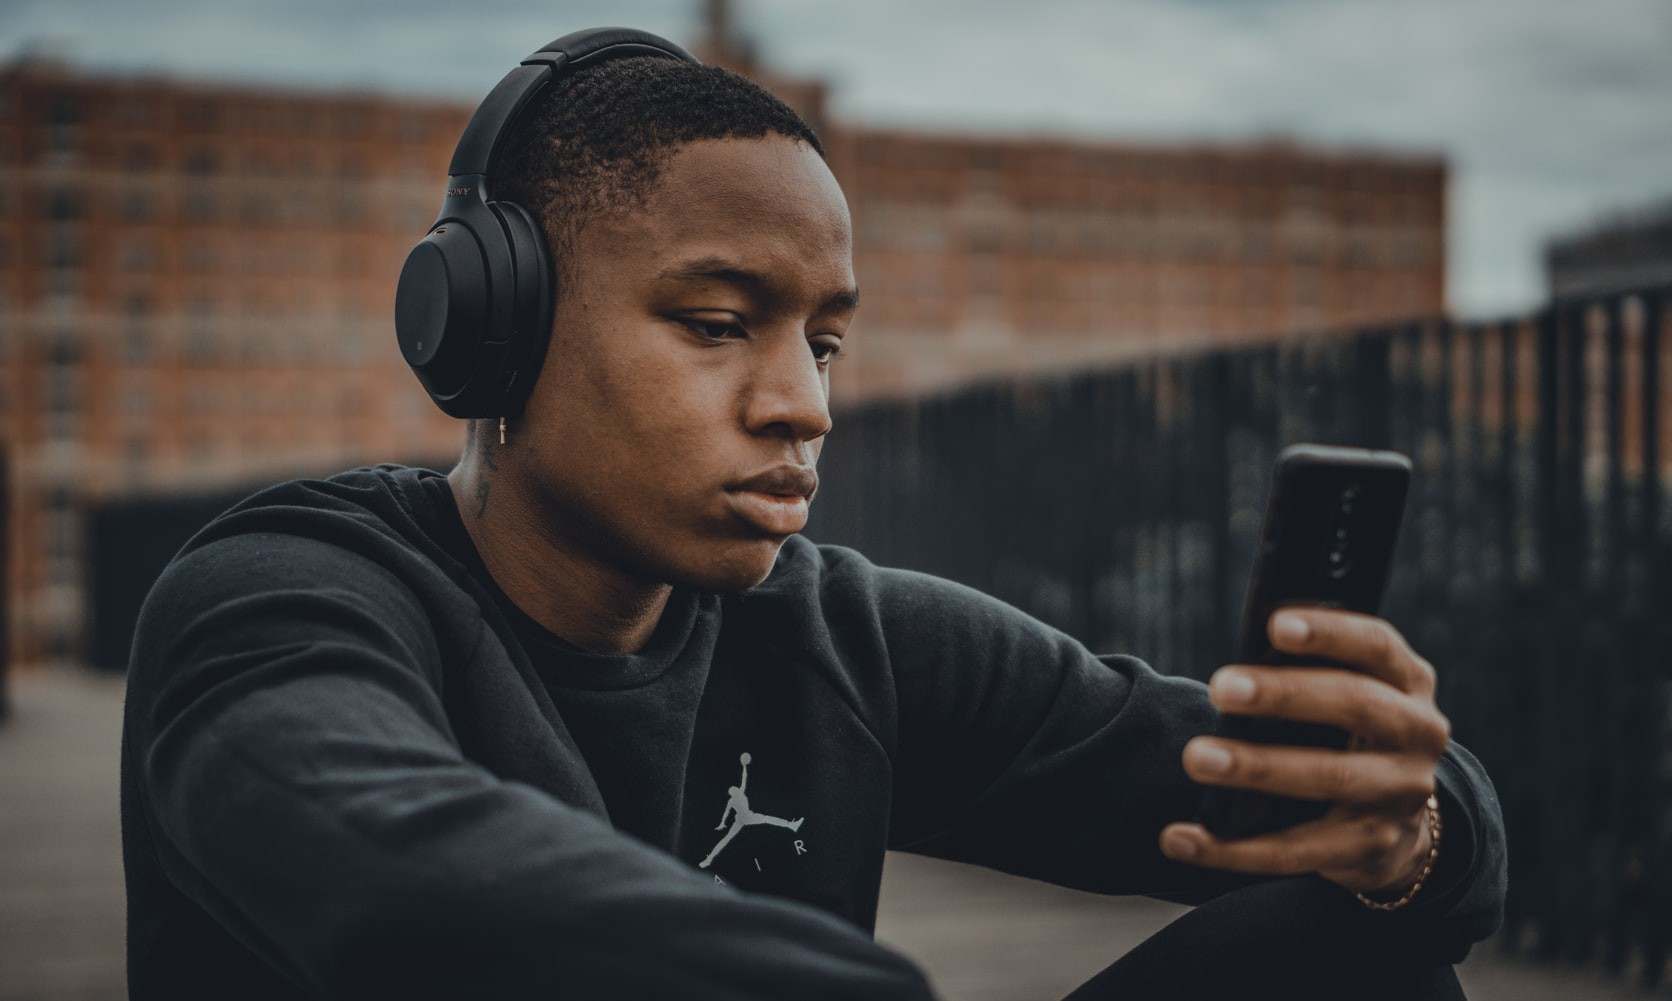 Man wearing headphones looks at a cellphone.